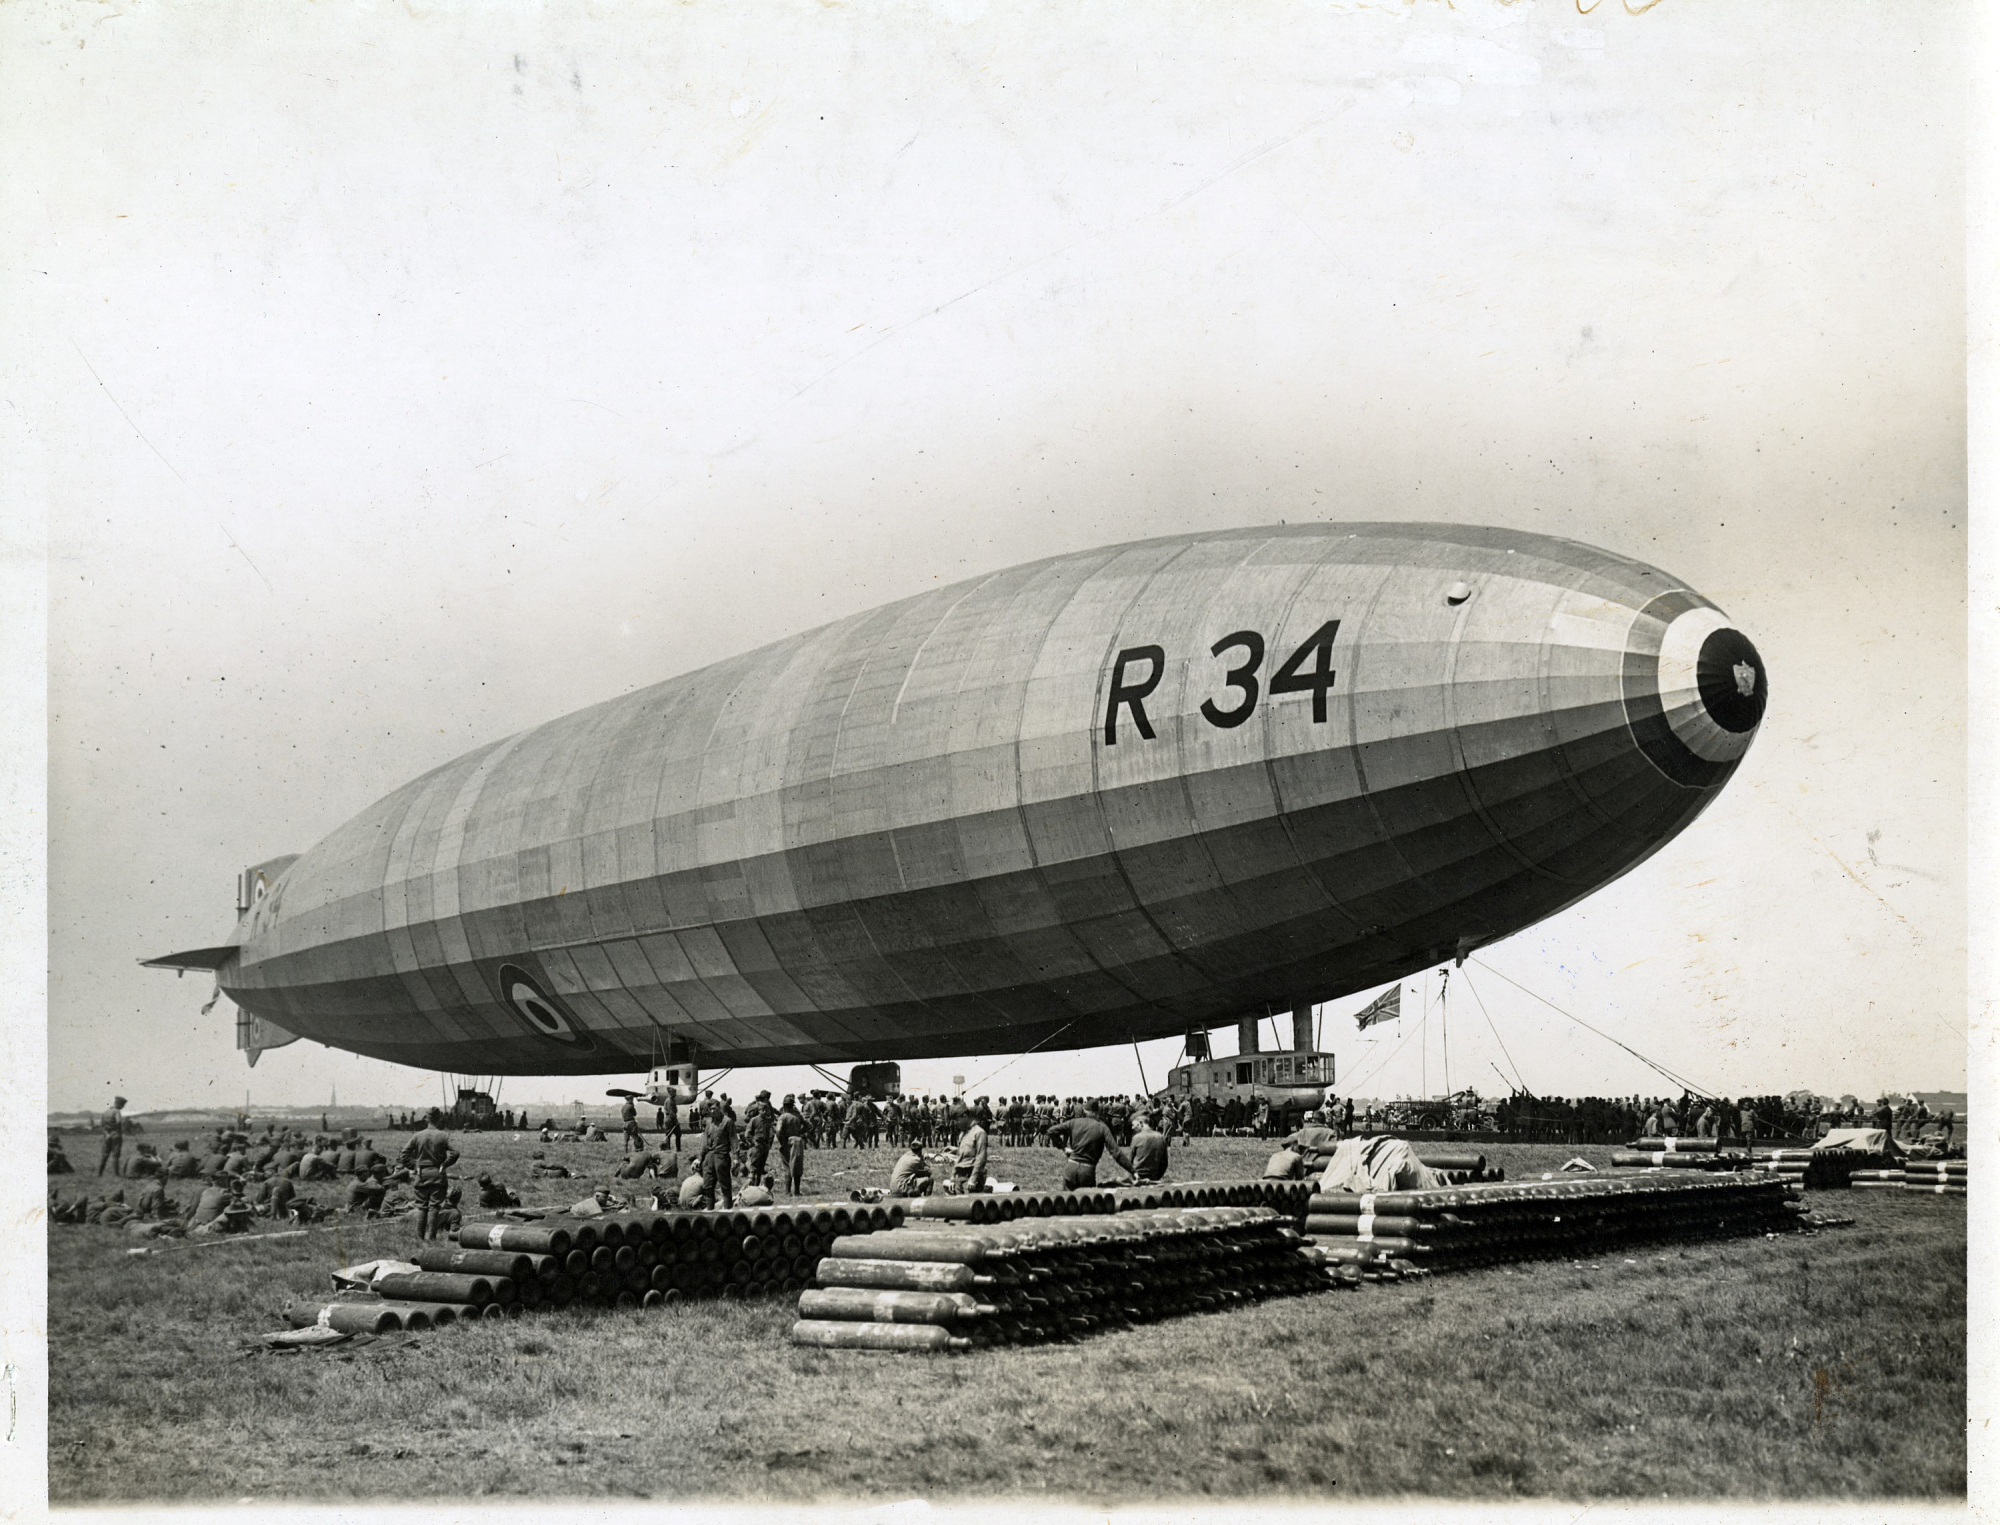 Airship R.34: A giant Scottish-built record breaker